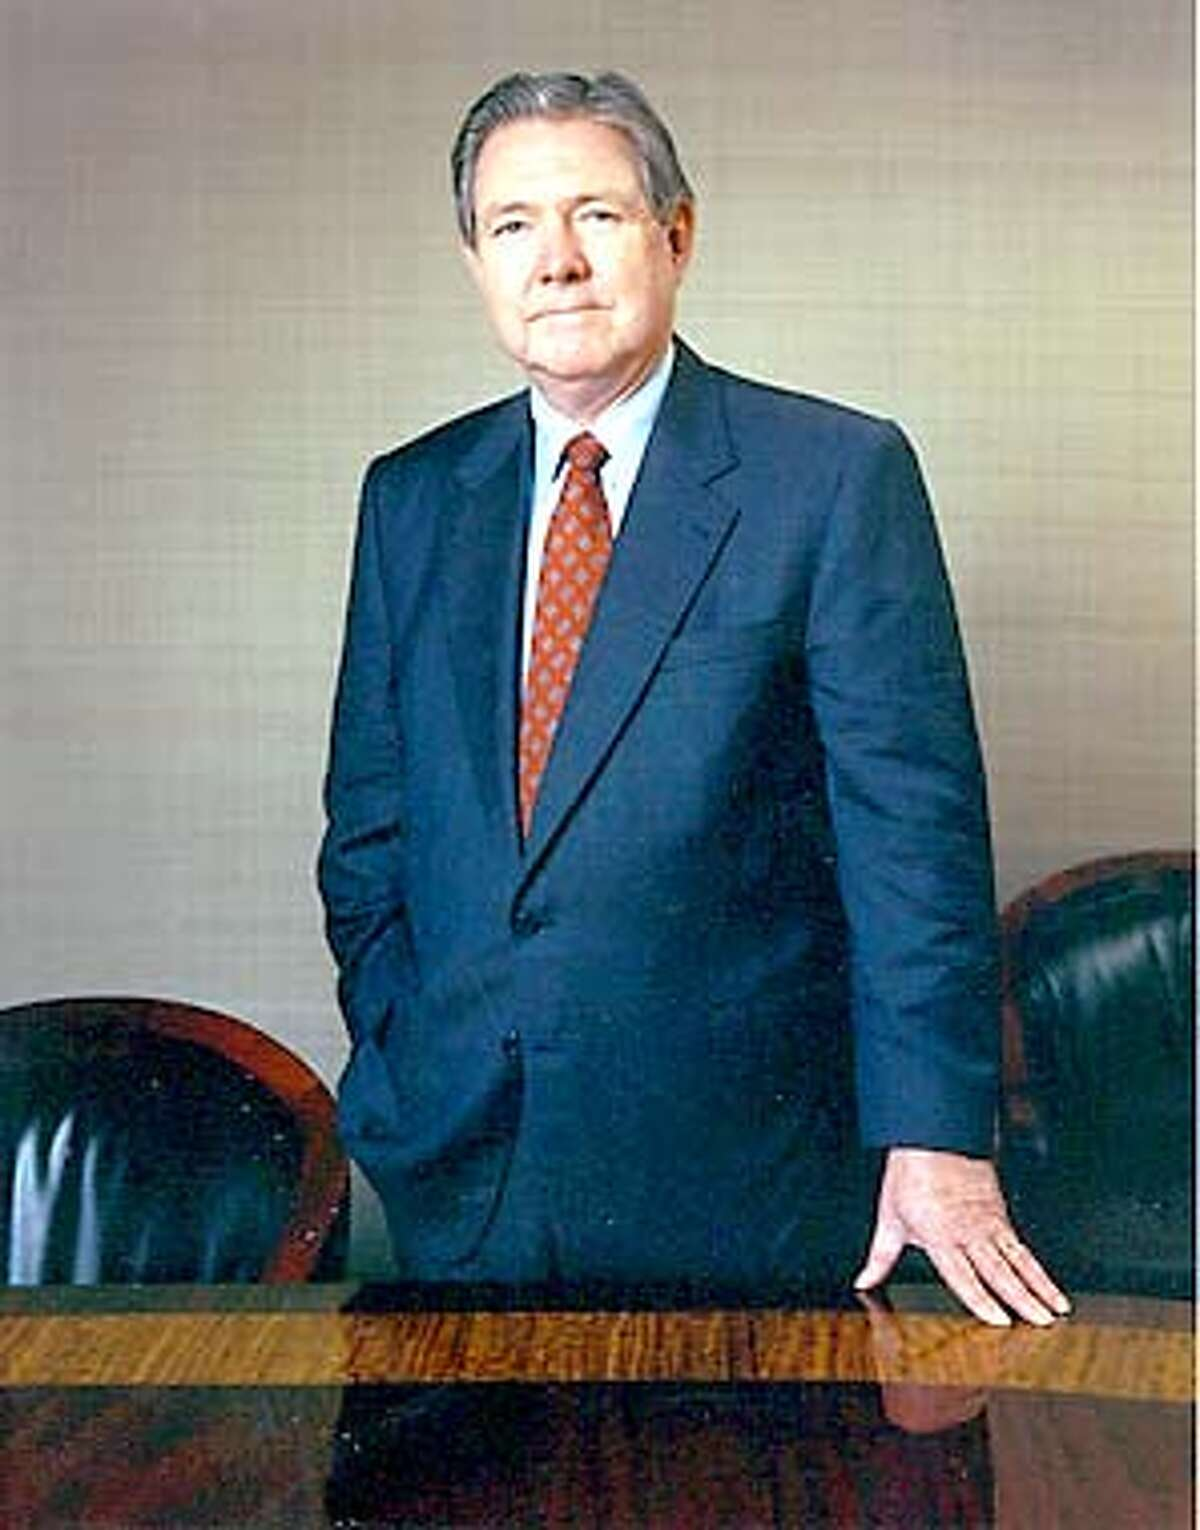 THIS IS A HANDOUT IMAGE. PLEASE VERIFY RIGHTS. Frank A. Bennack Jr. will retire next June as president and chief executive officer of The Hearst Corporation. Undated handout photo